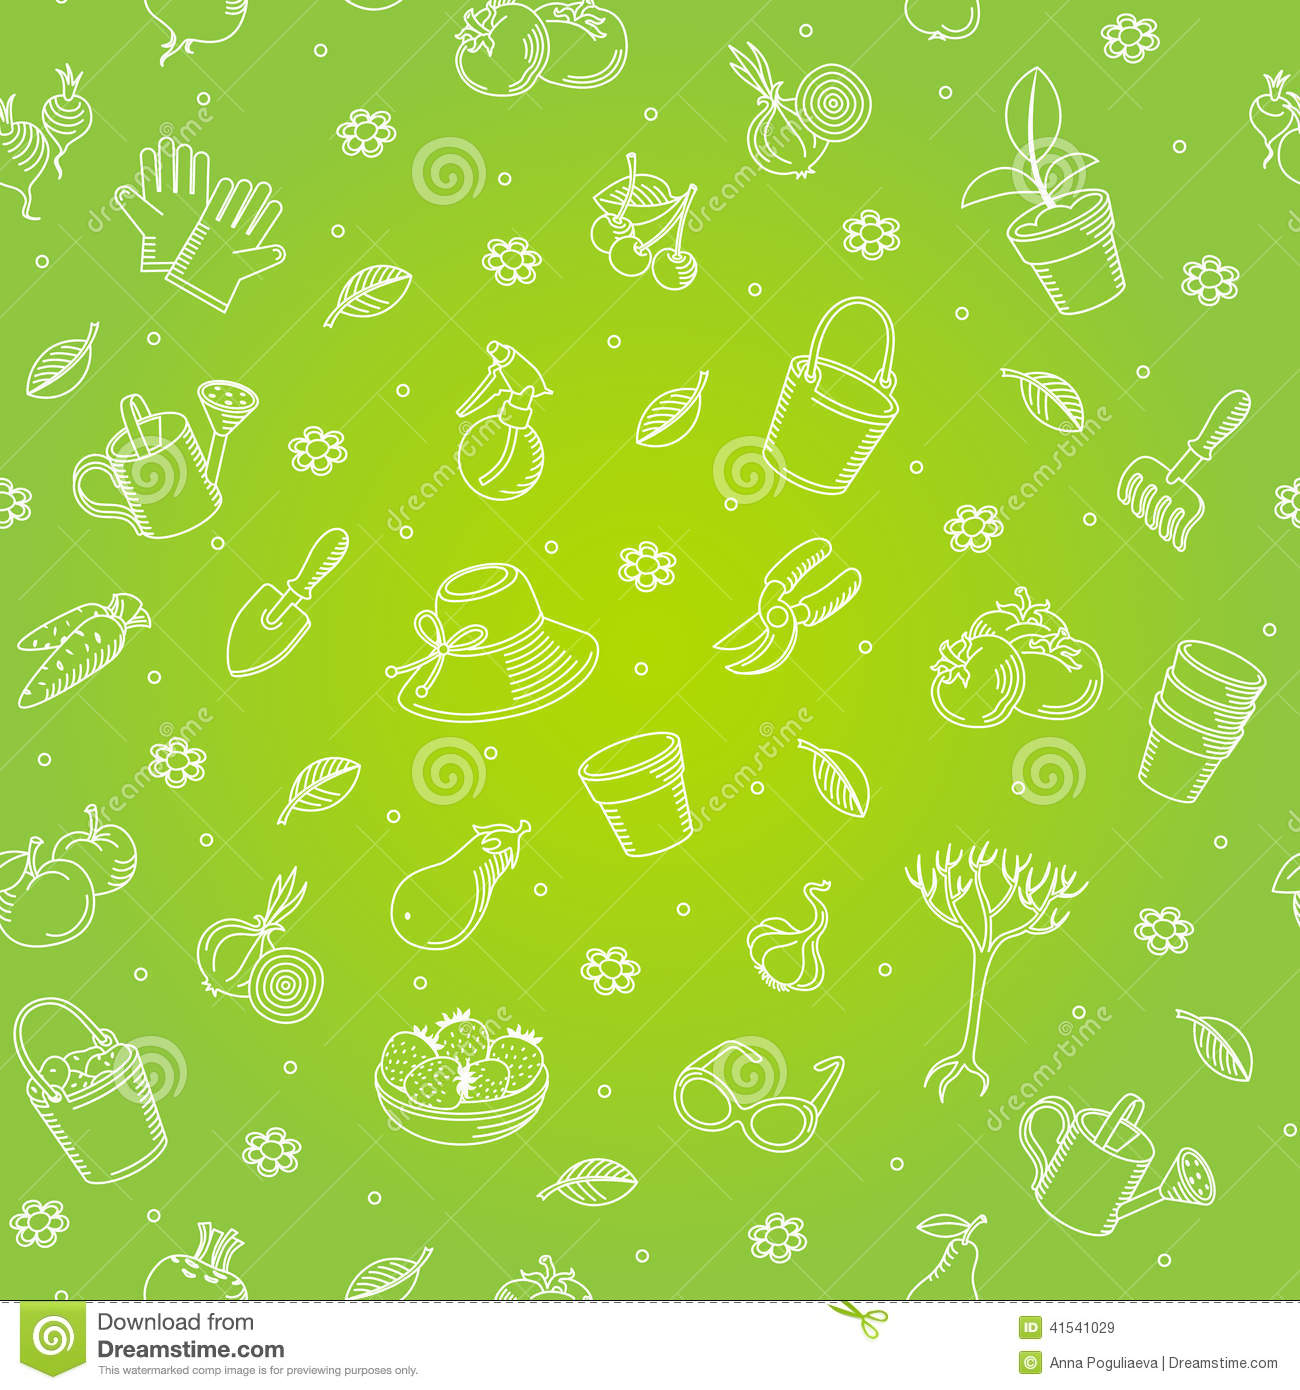 vector seamless backgroung of hand drawn garden tools